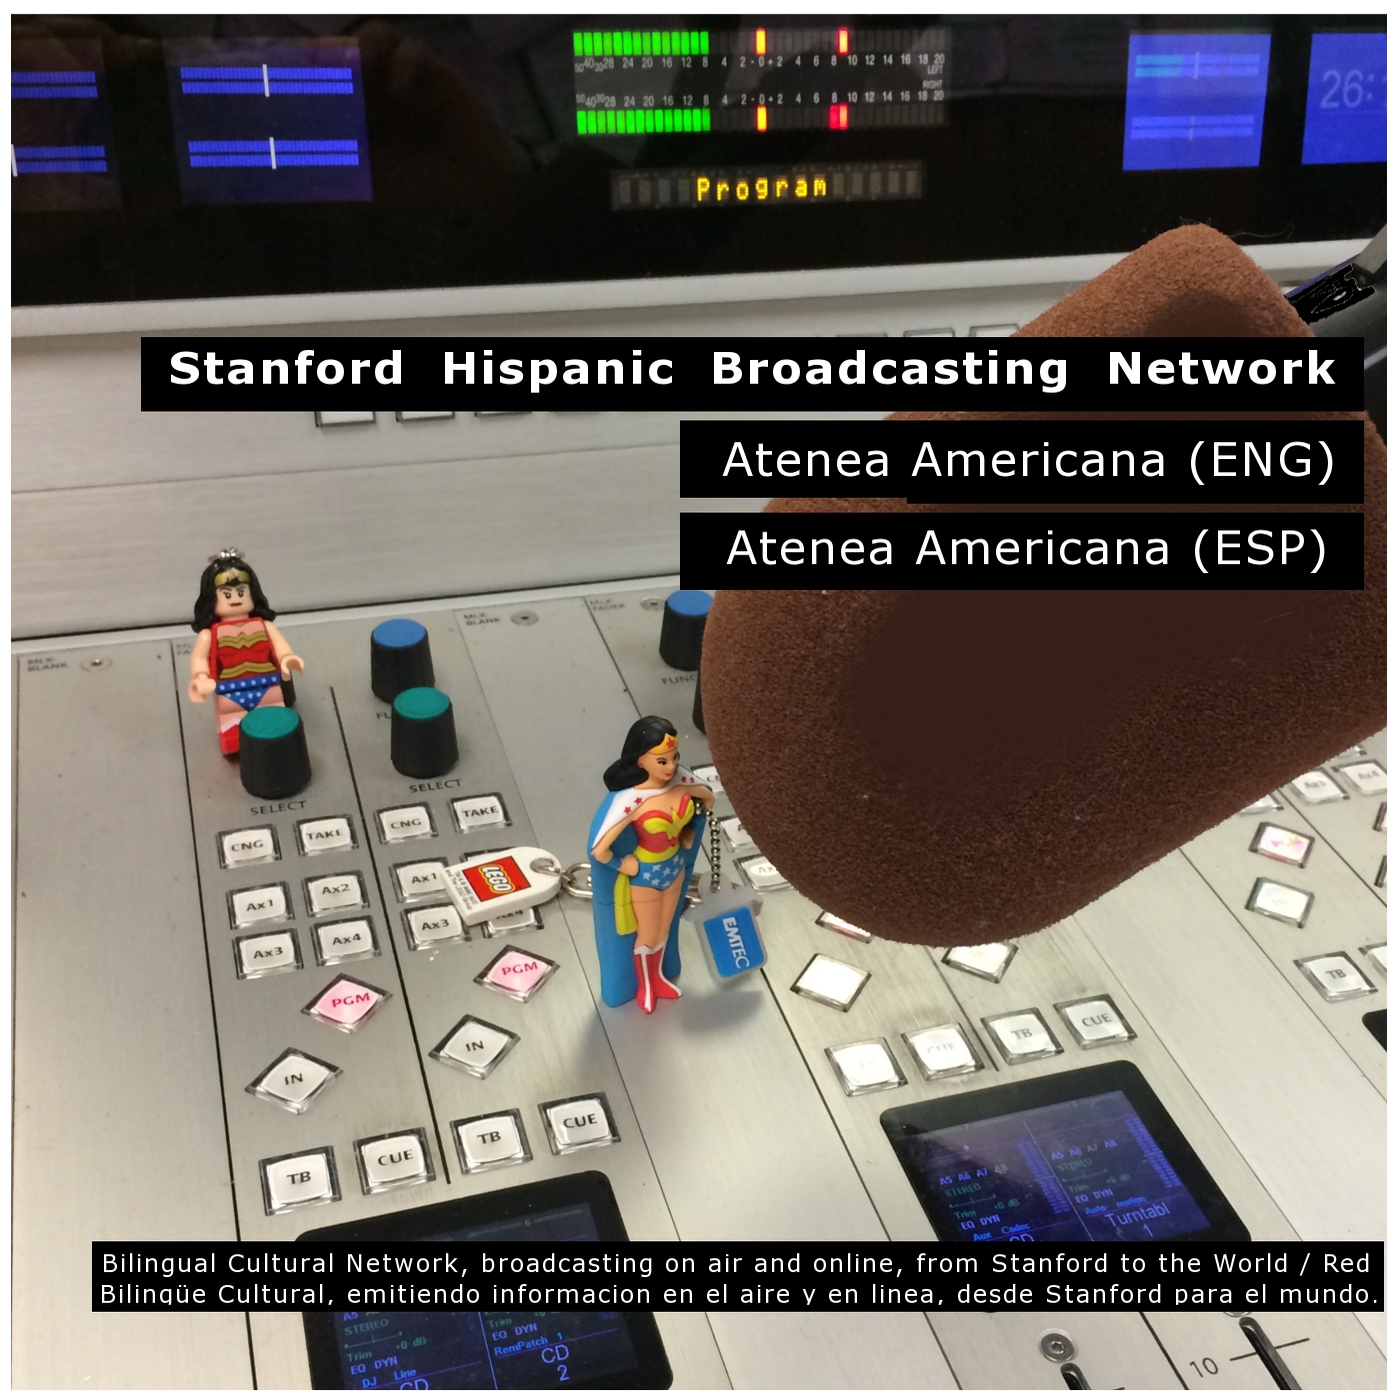 Atenea Americana - by Stanford Hispanic Broadcasting